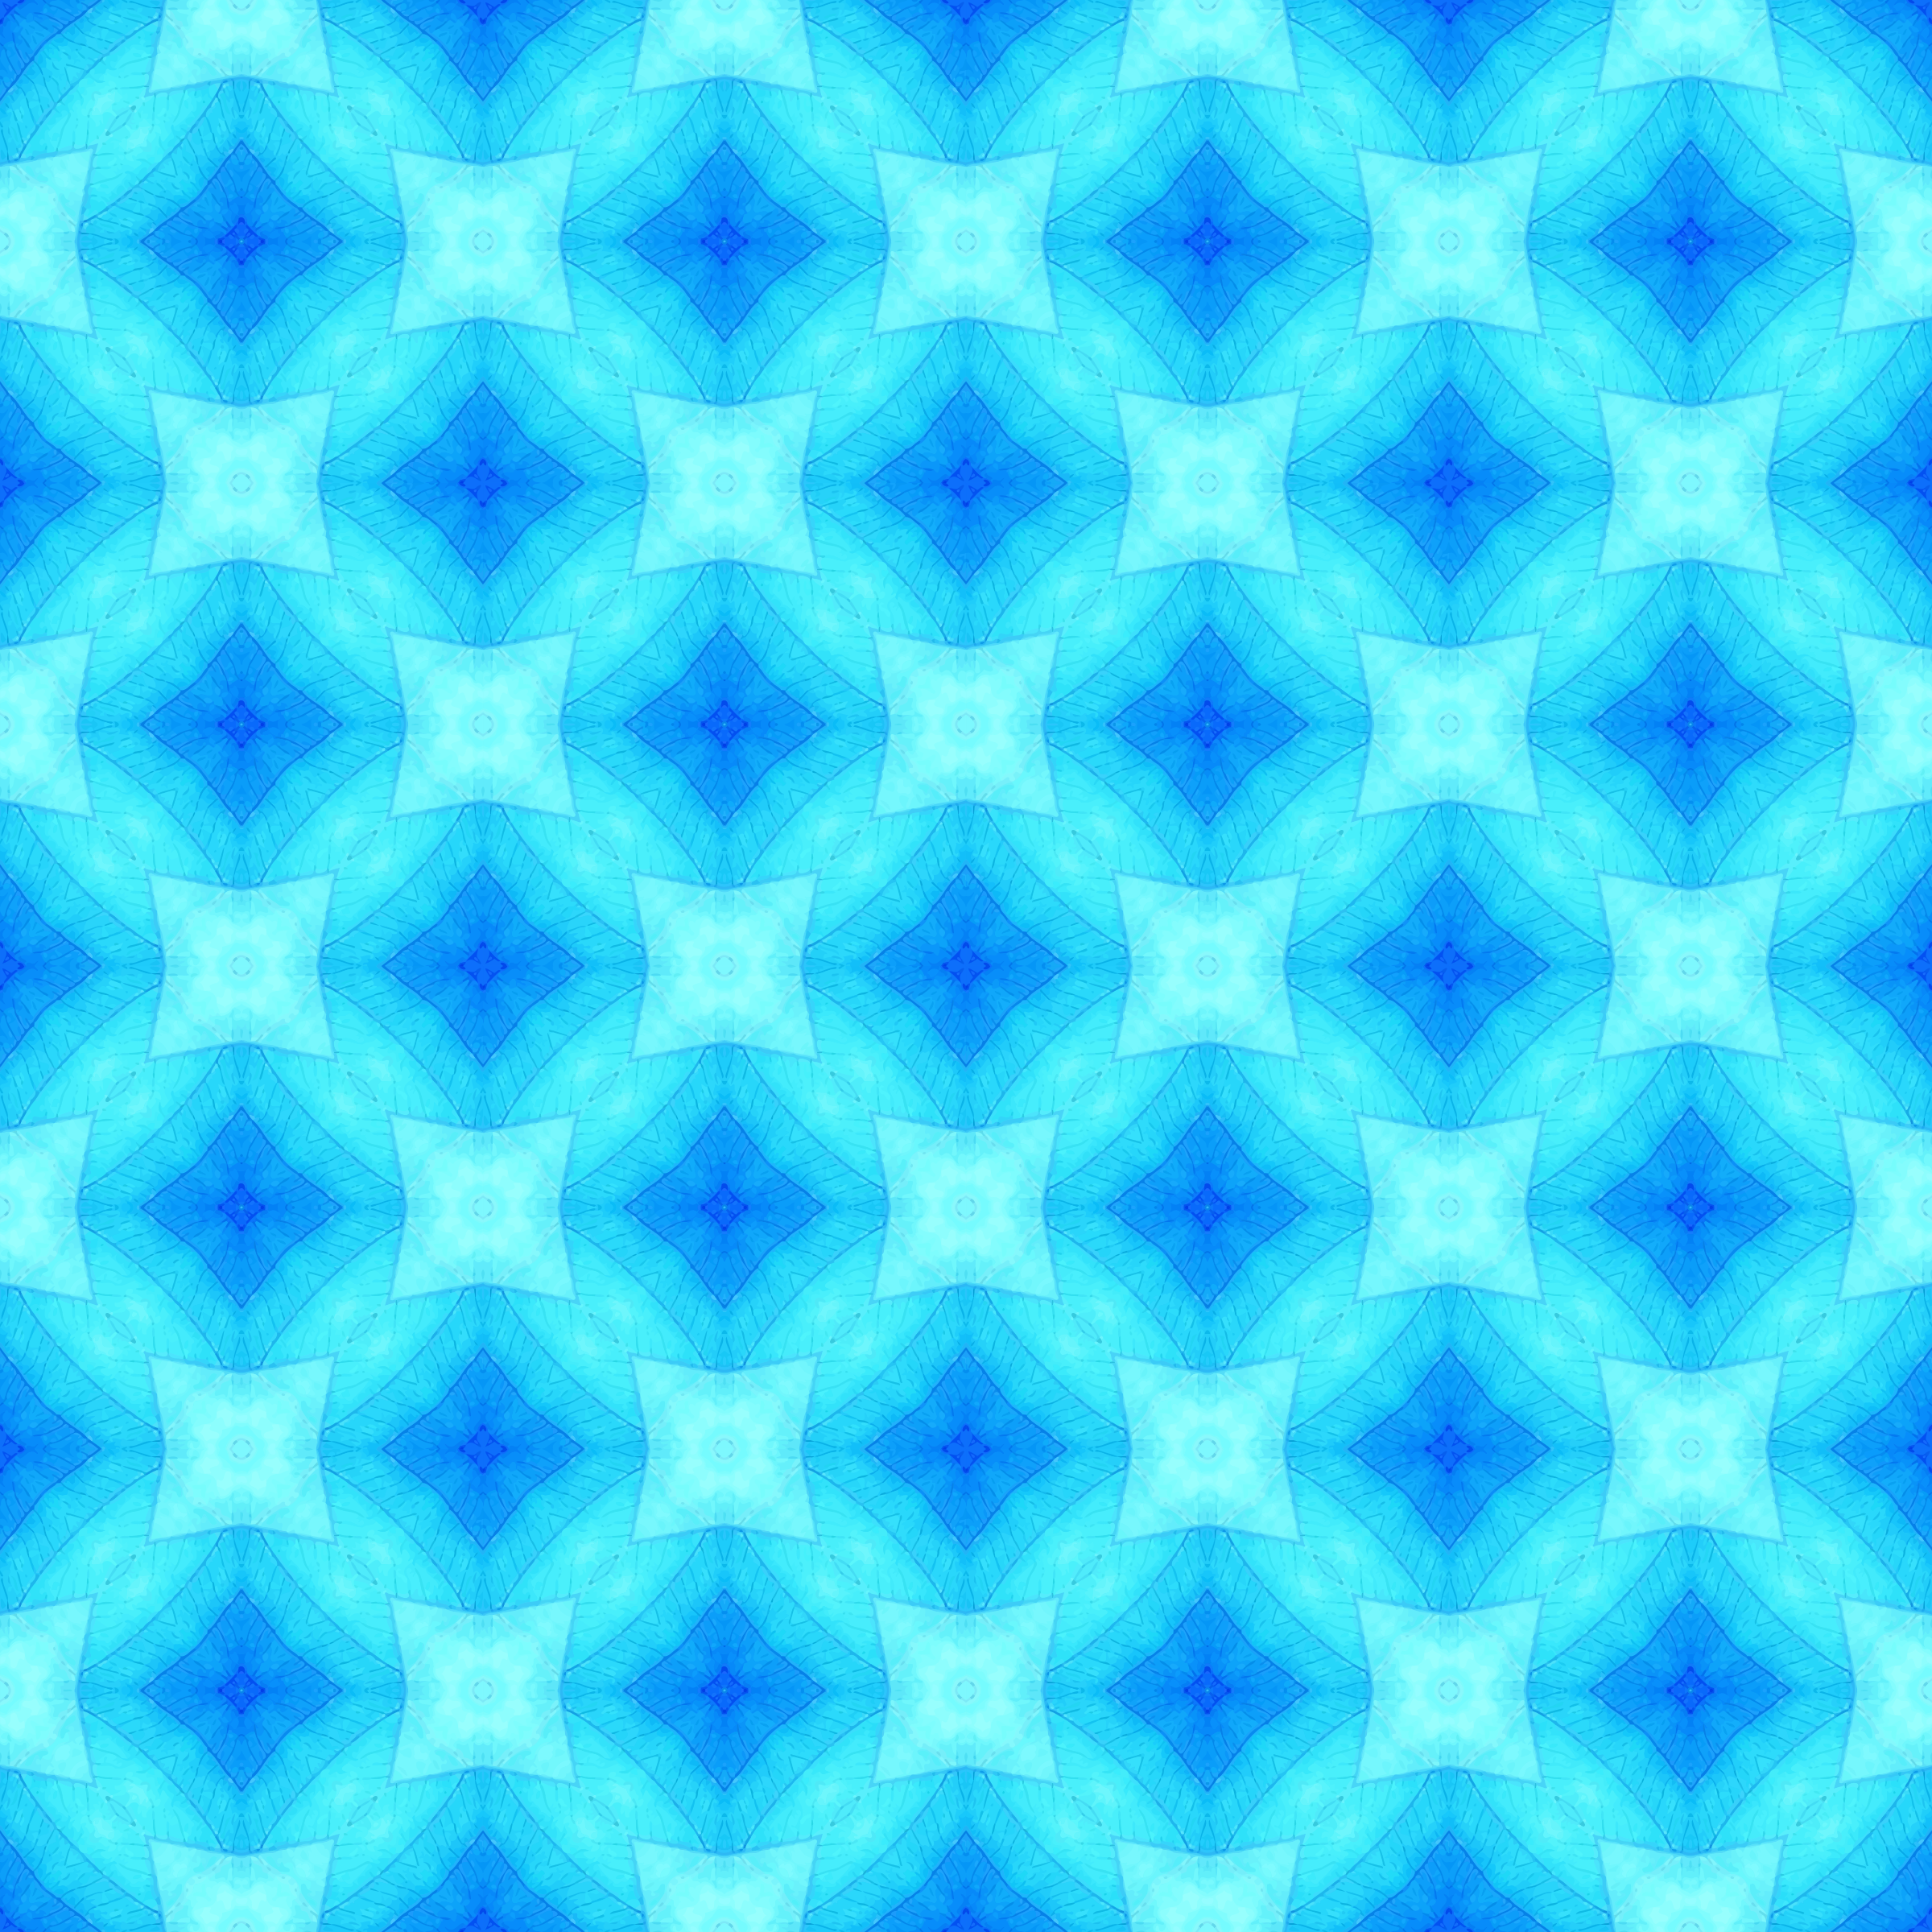 Background pattern 168 (colour 4) by Firkin